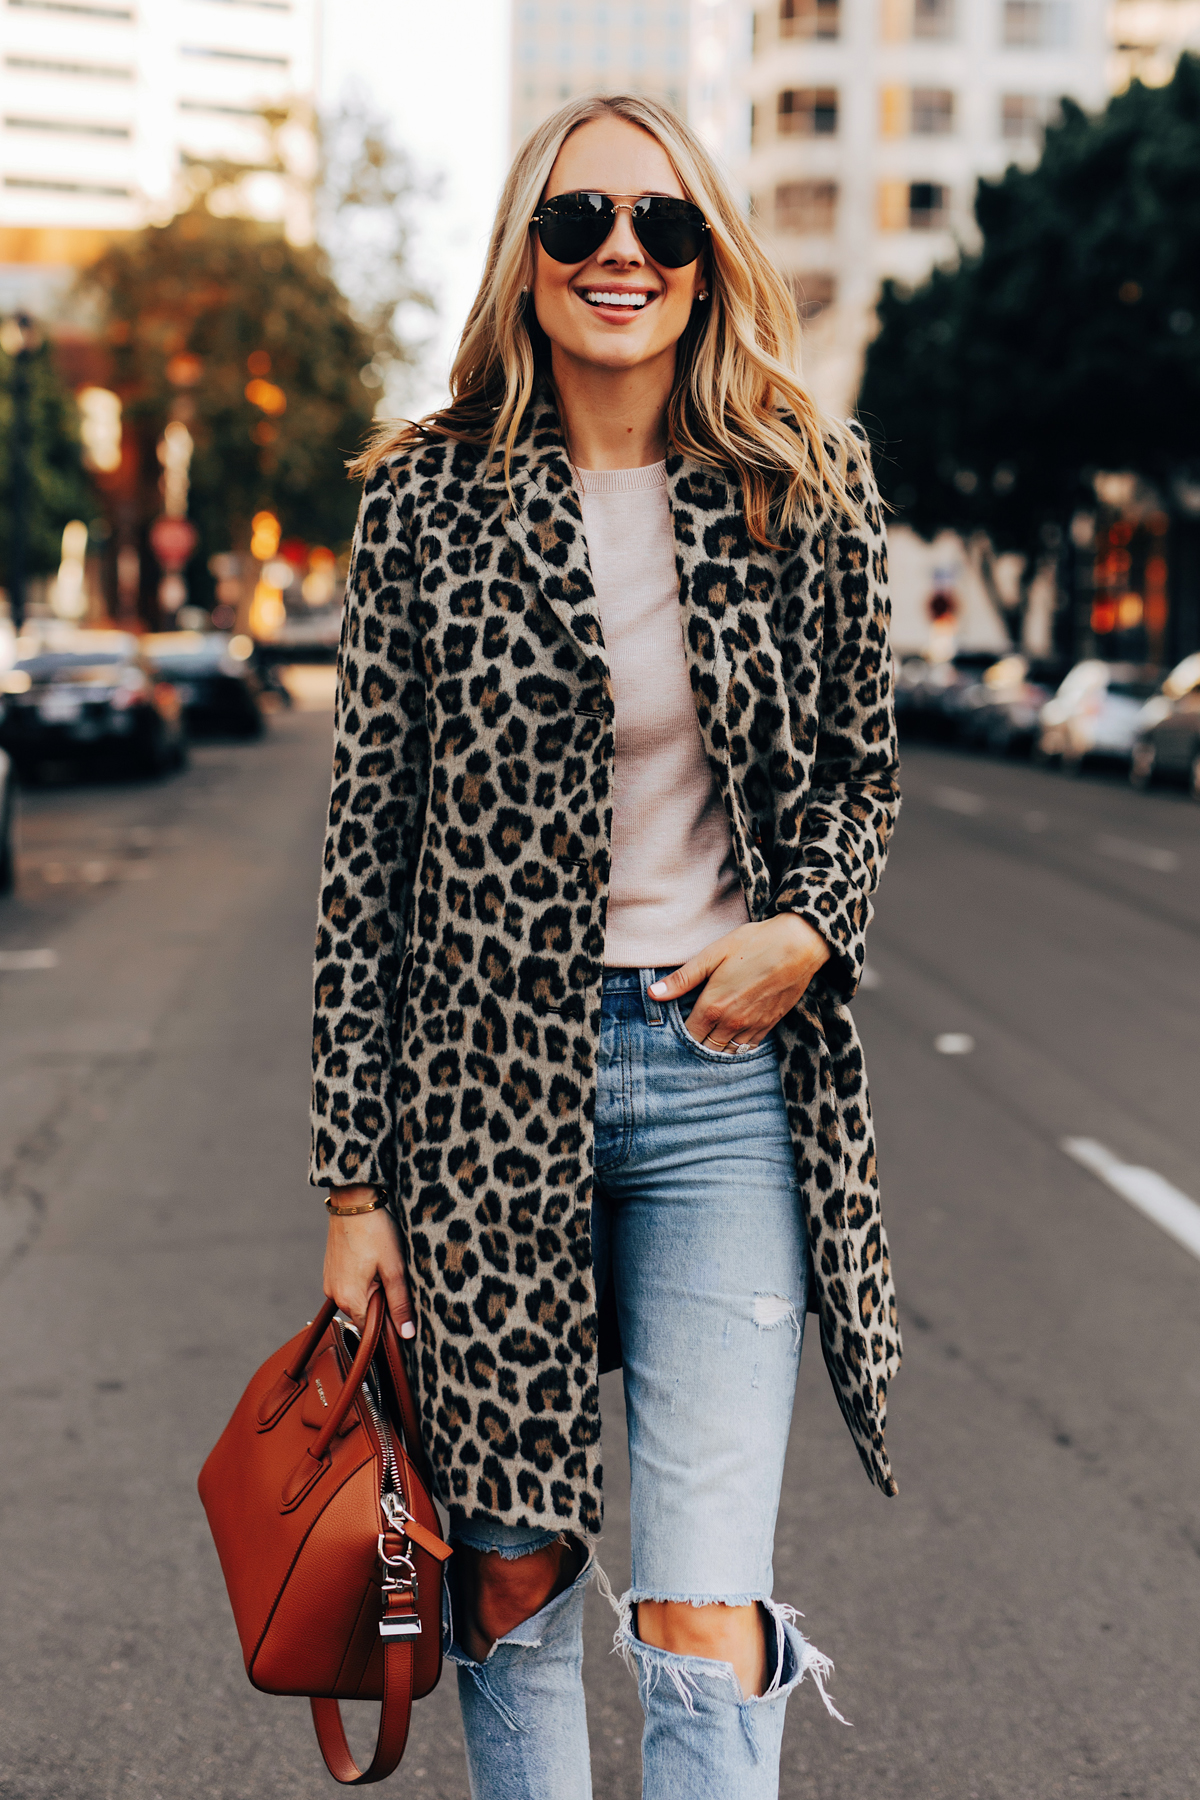 Fashion Jackson Wearing Ann Taylor Leopard Coat Ripped Jeans Givenchy Antigona Cognac Satchel